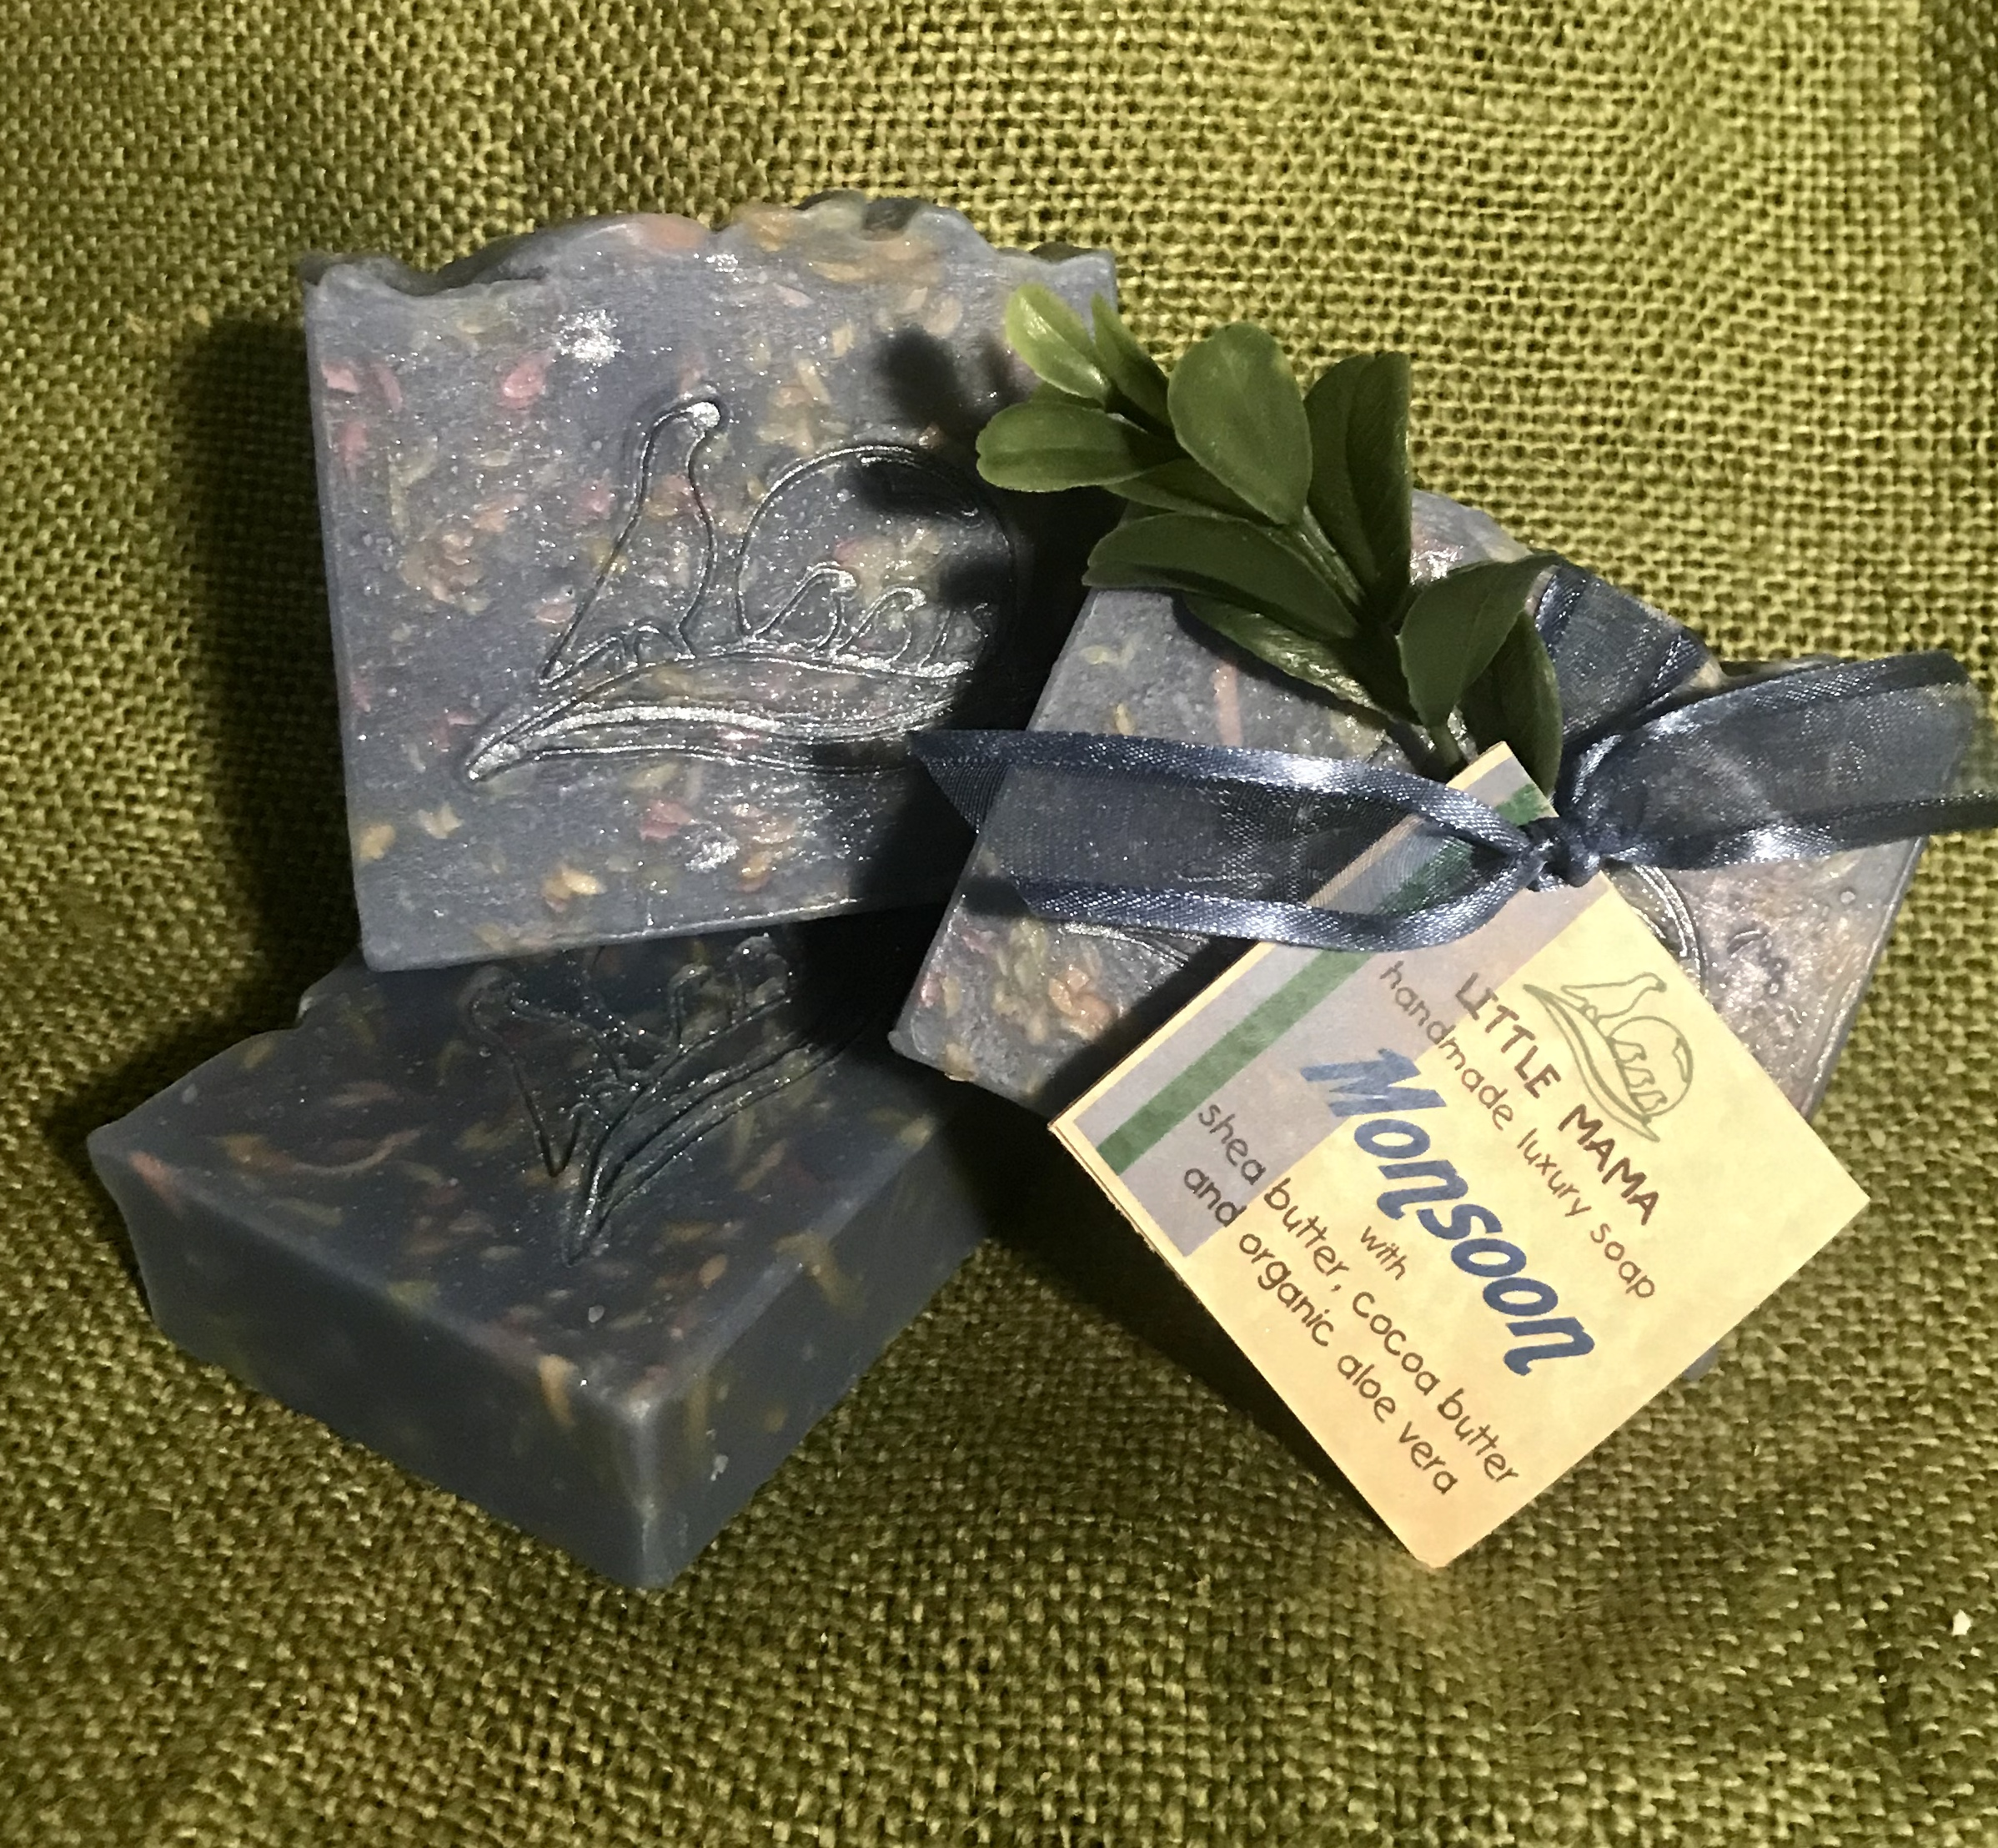 Monsoon Soap